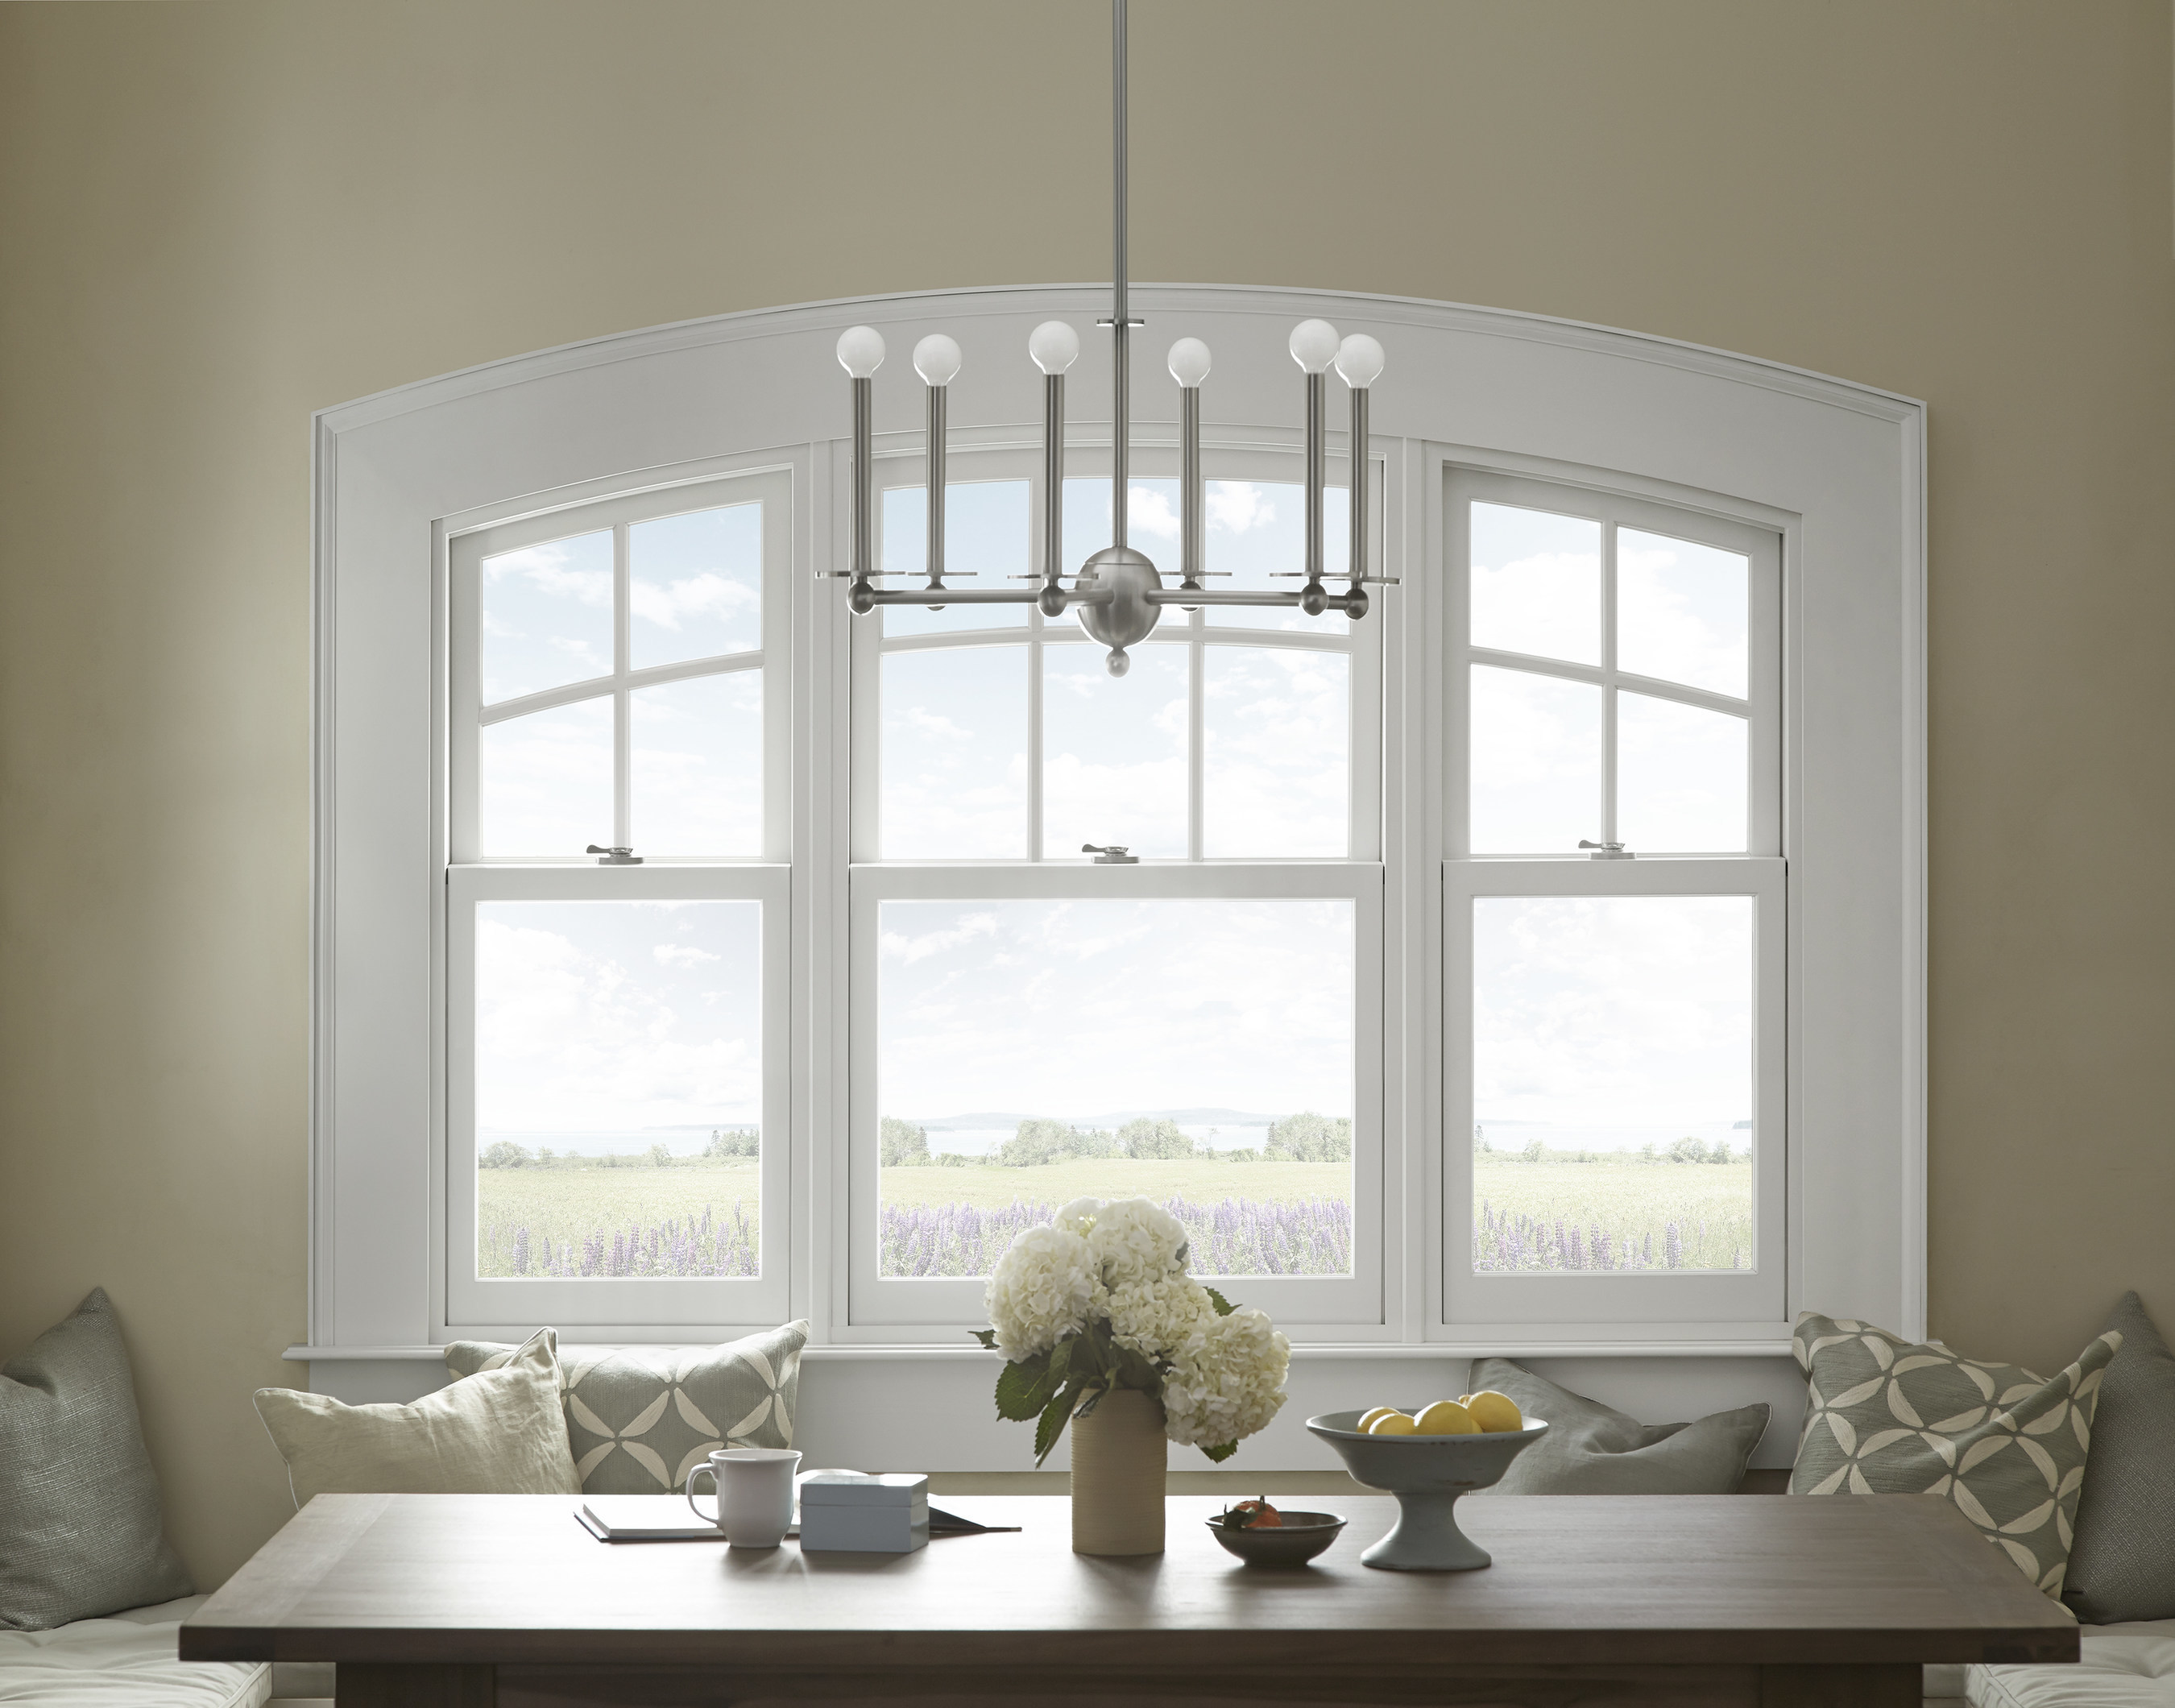 With the introduction of the award-winning Next Generation Ultimate Double Hung, Marvin Windows and Doors has reimagined a timeless classic. Now, to celebrate, the company is putting a new spin on a classic rock song - and awarding 10 lucky industry professionals a VIP trip to see The Who, live in concert.